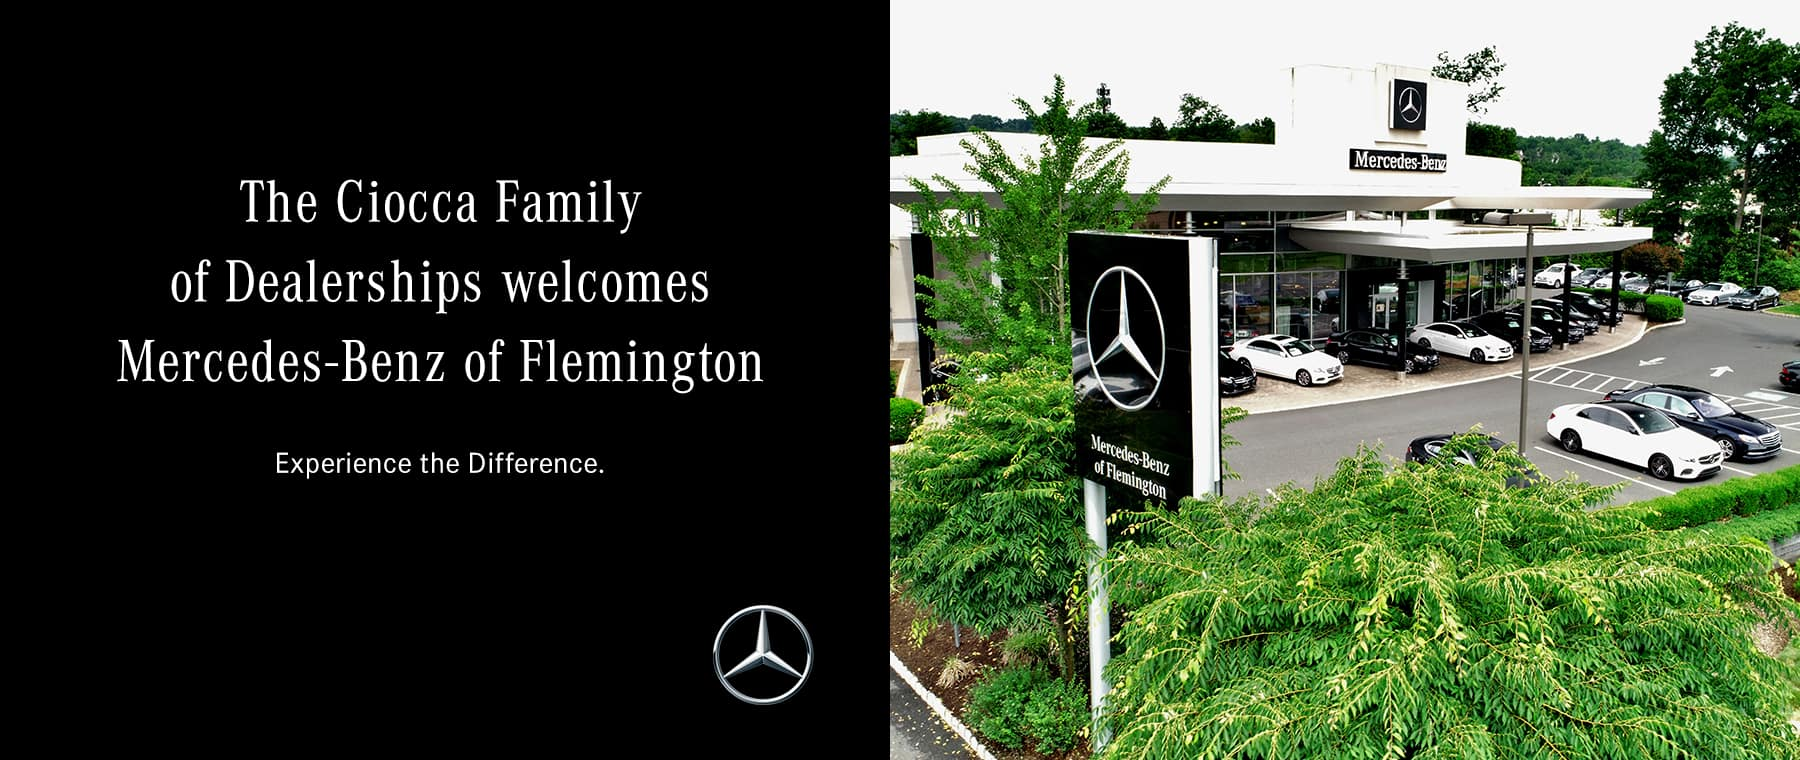 Mercedes Benz Of Flemington | New Mercedes Benz Dealership In Flemington,  NJ 08822